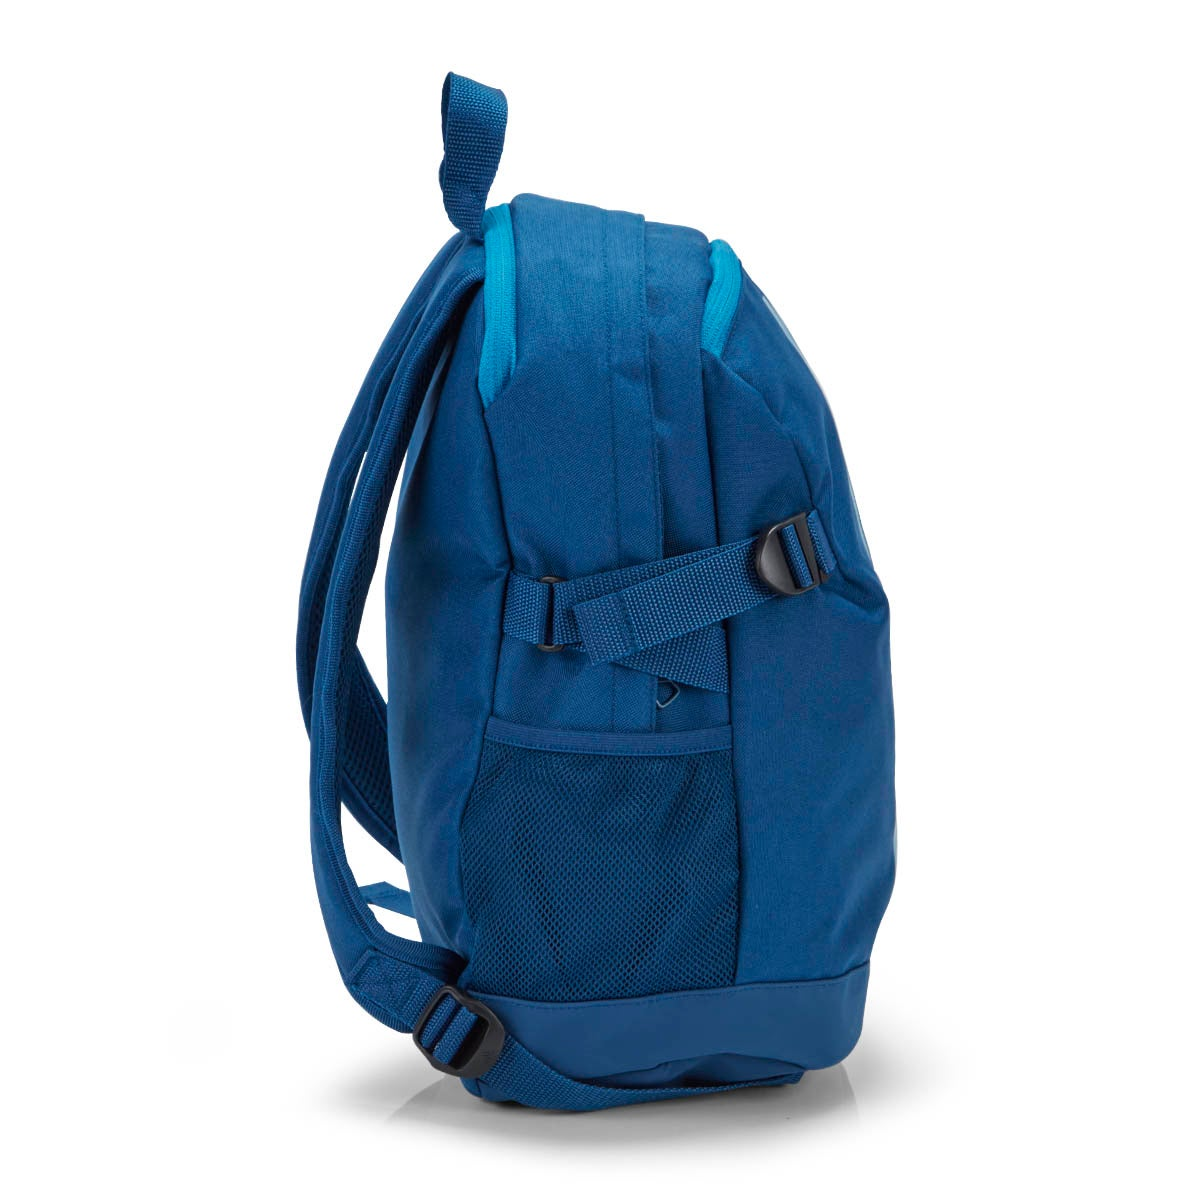 Adidas BP Power IV S MF blue backpack